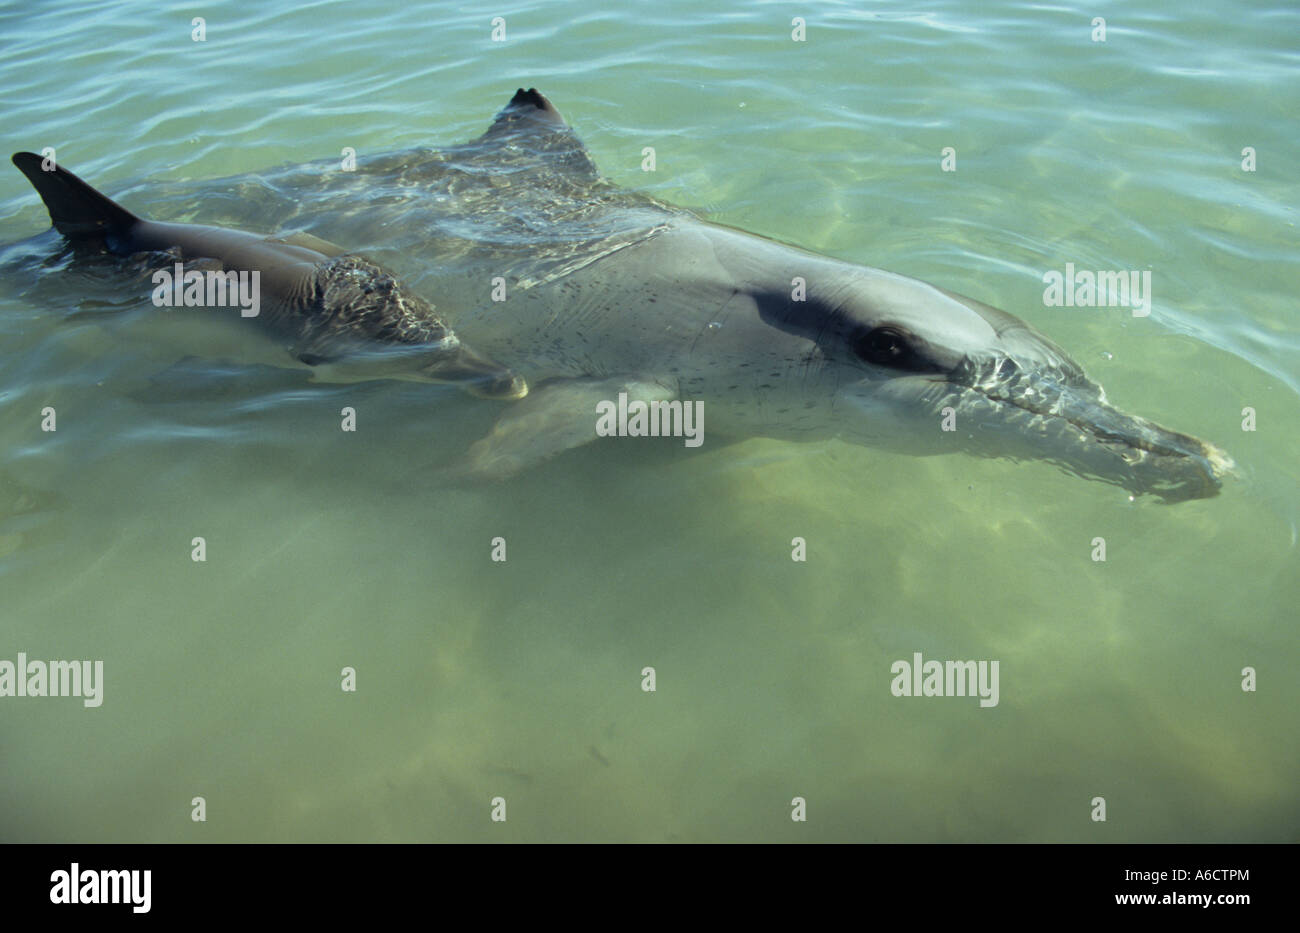 Indo Pacific bottlenose dolphin with calf Tursiops aduncus Monkey Mia Shark Bay Western Australia - Stock Image